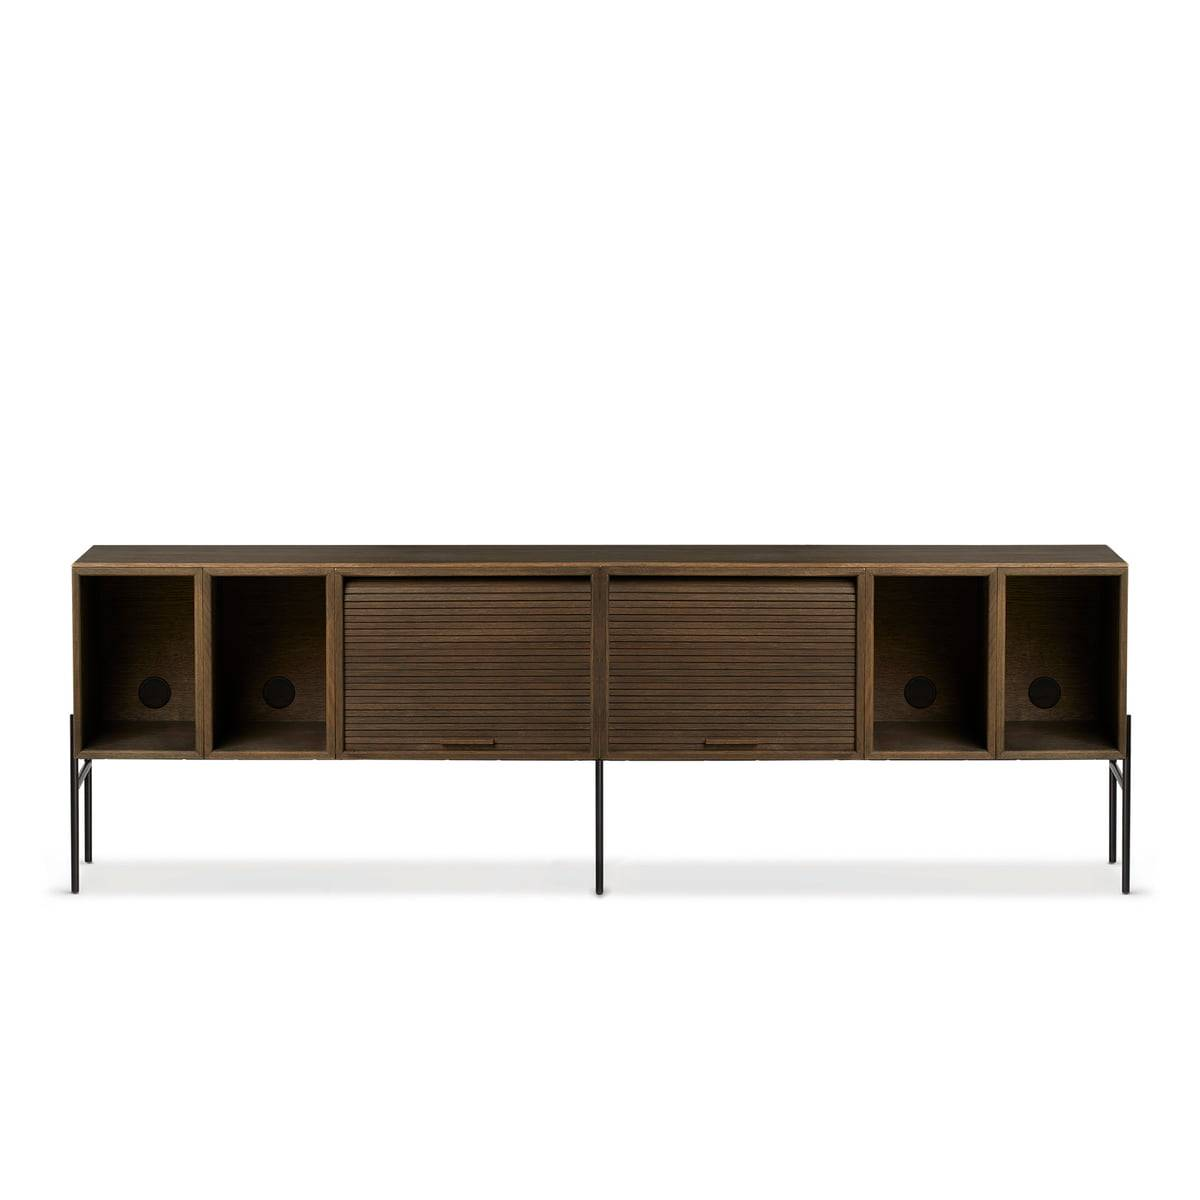 Northern - Hifive 200 sideboard, smoked oak